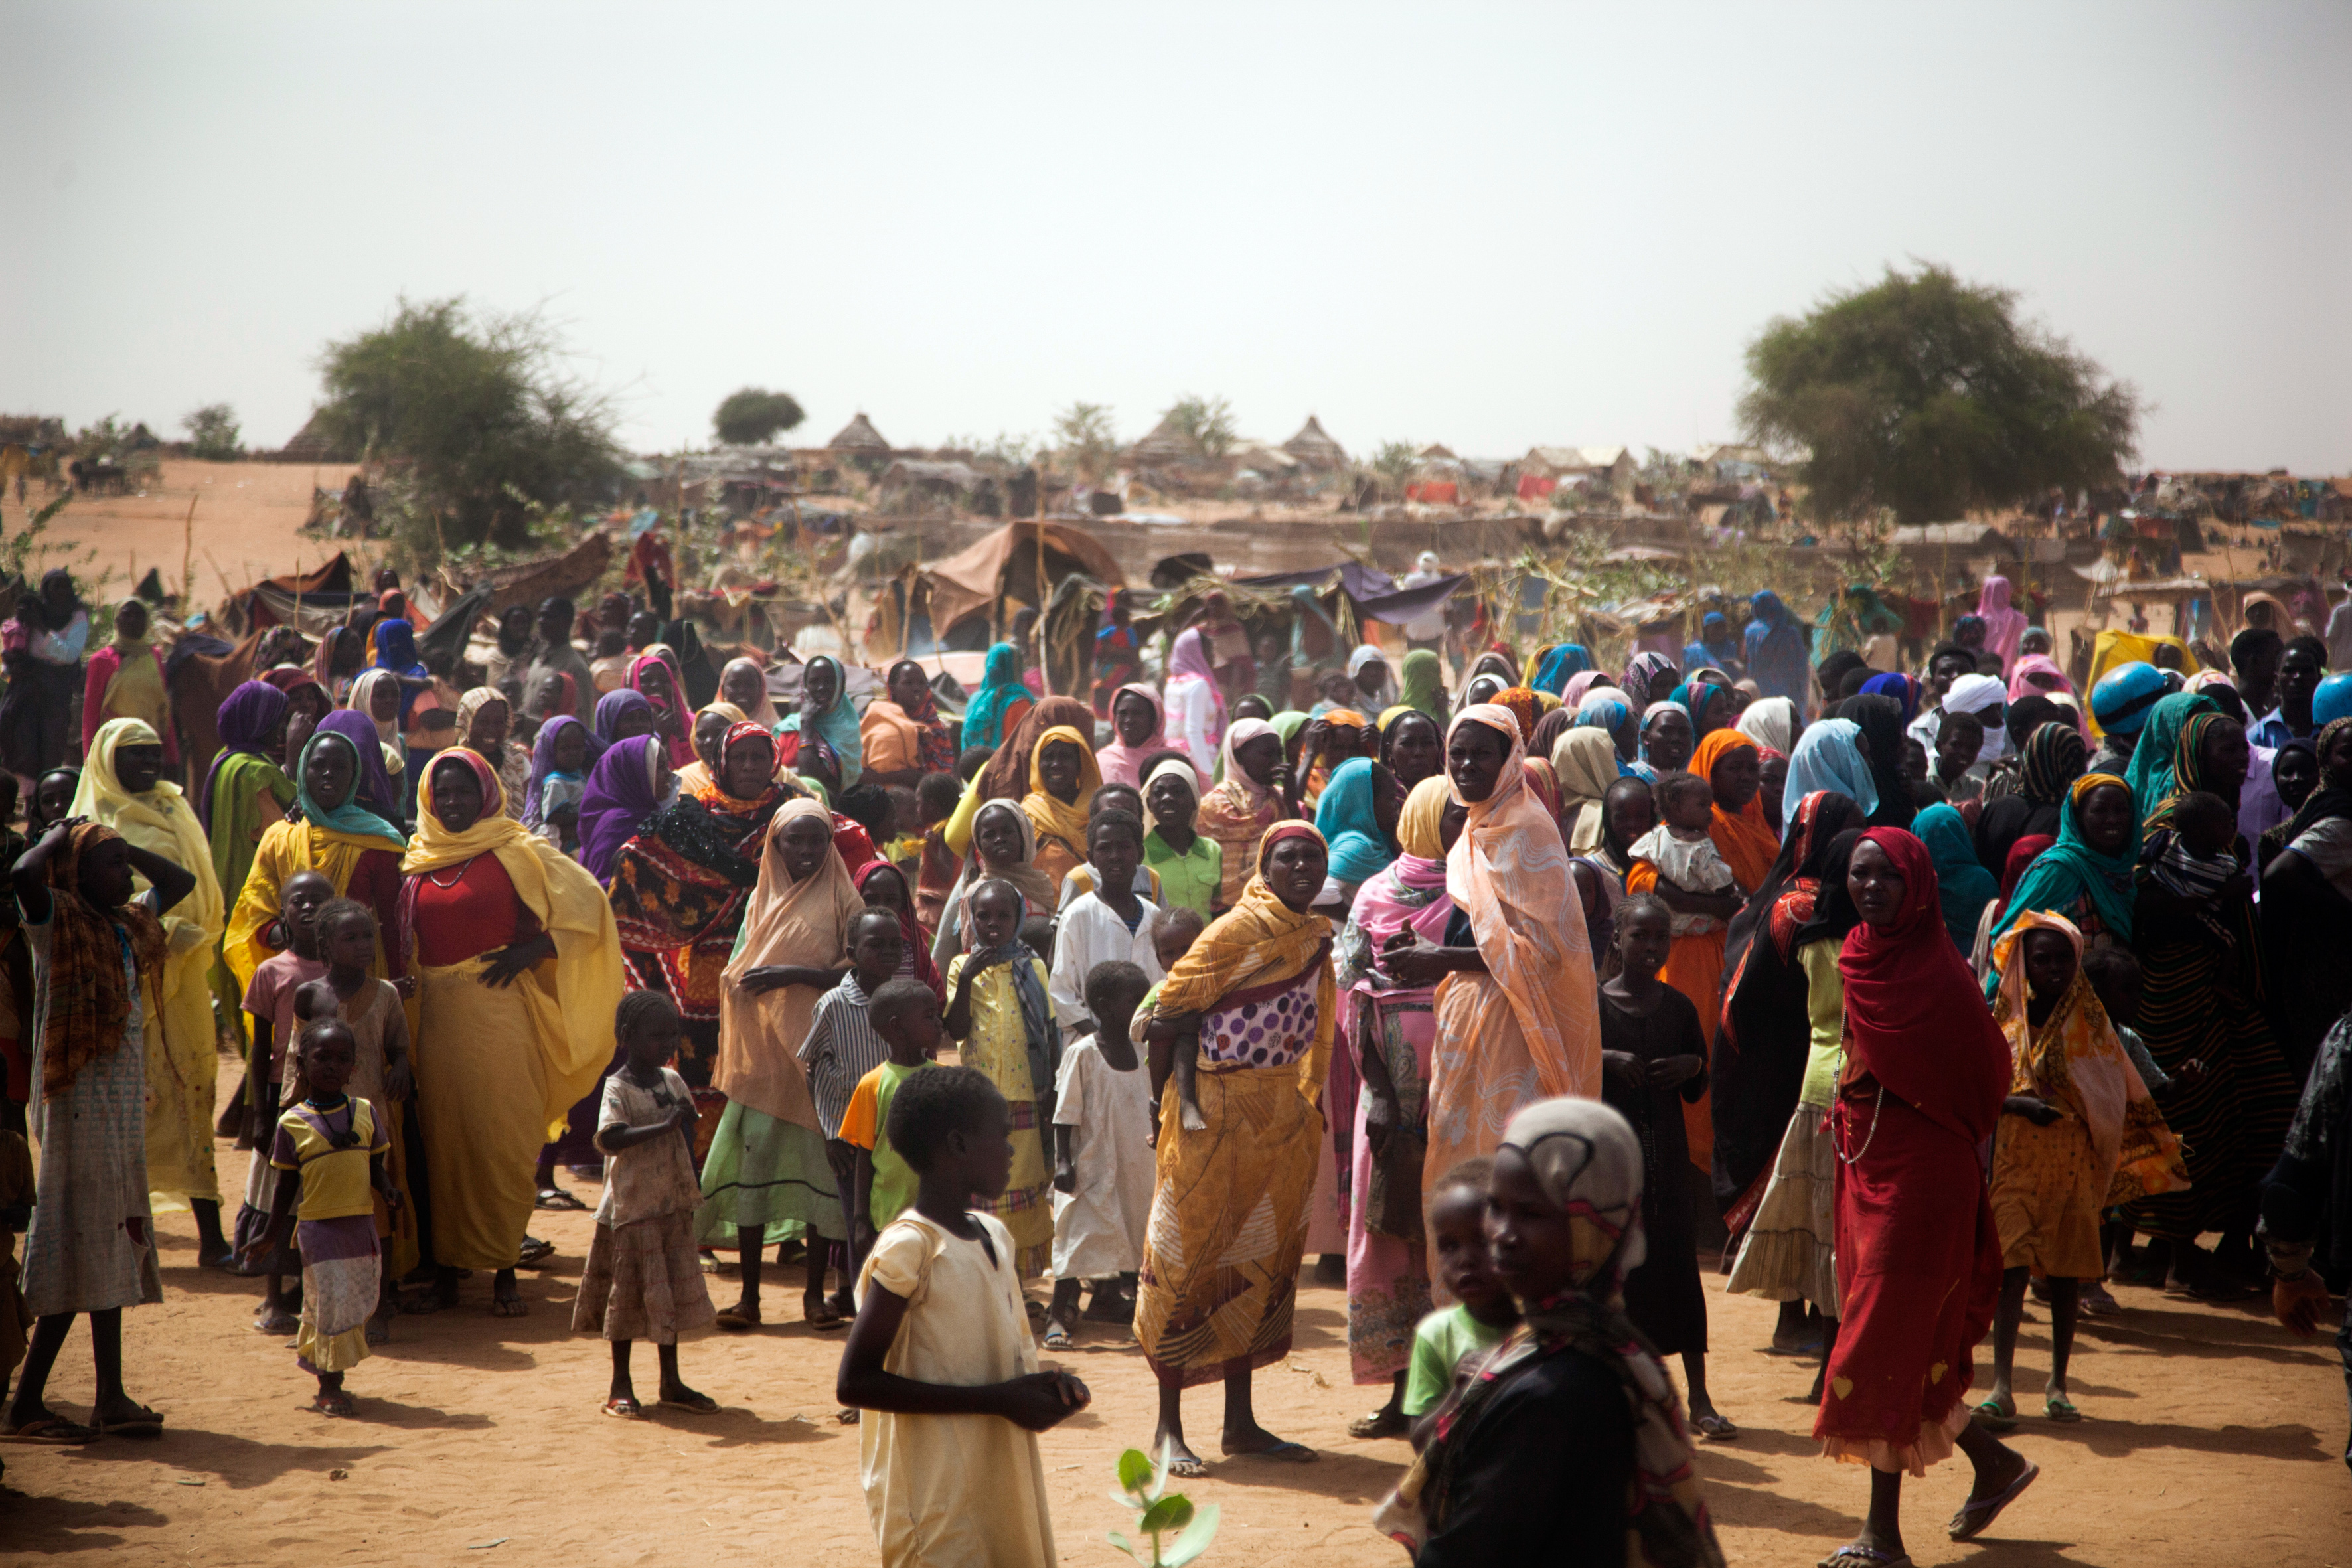 Ali Kushayb Arrest: One Step Closer to Justice for Darfur